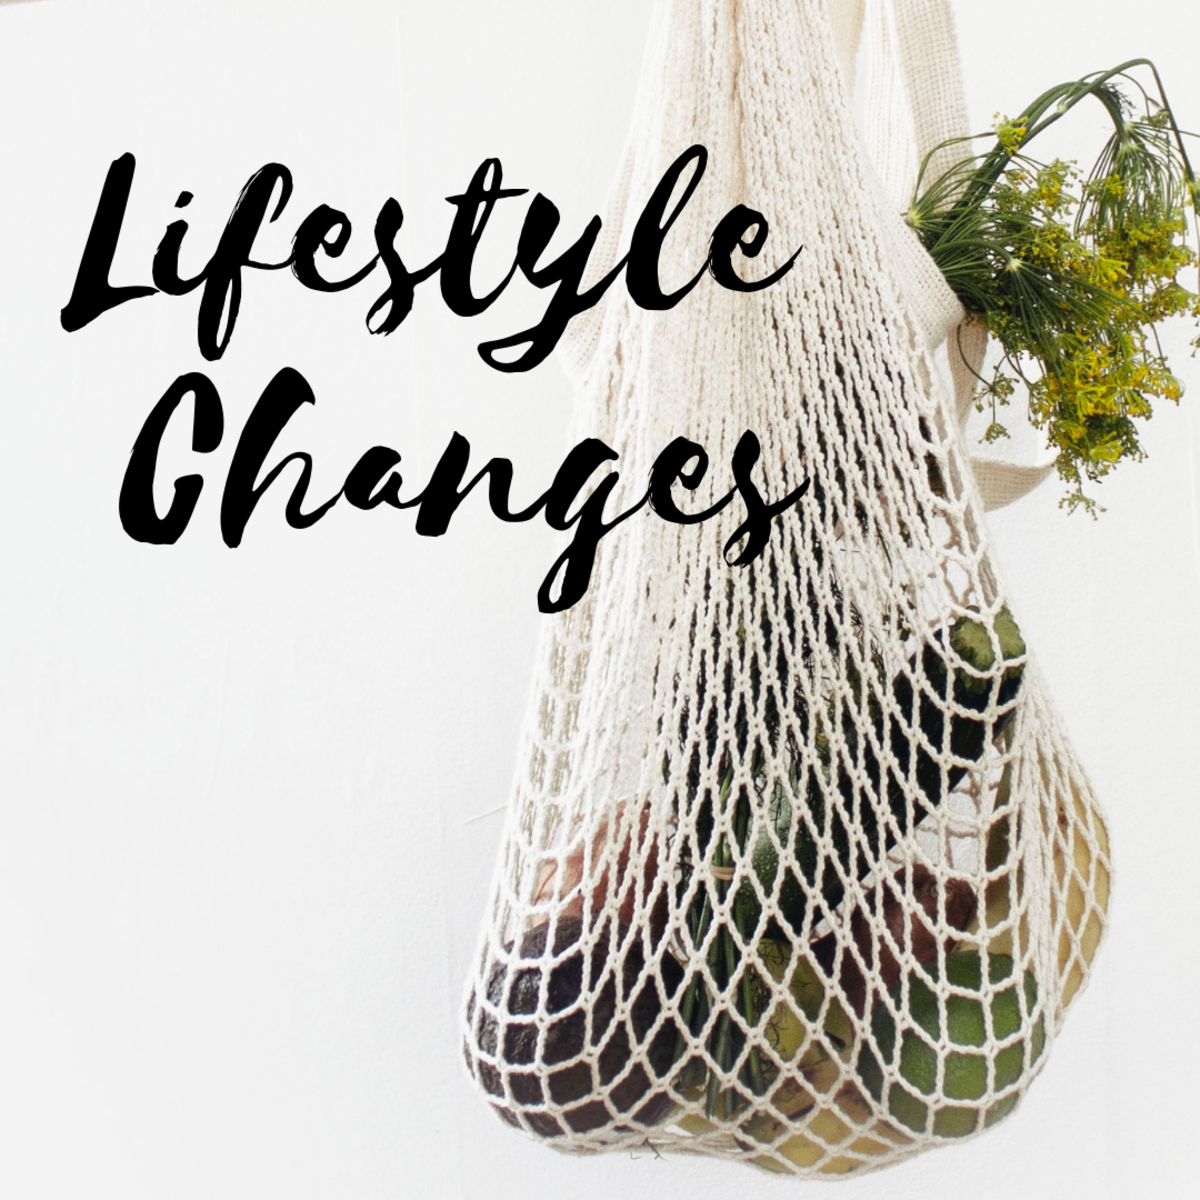 What lifestyle changes can you make to improve your overall health?